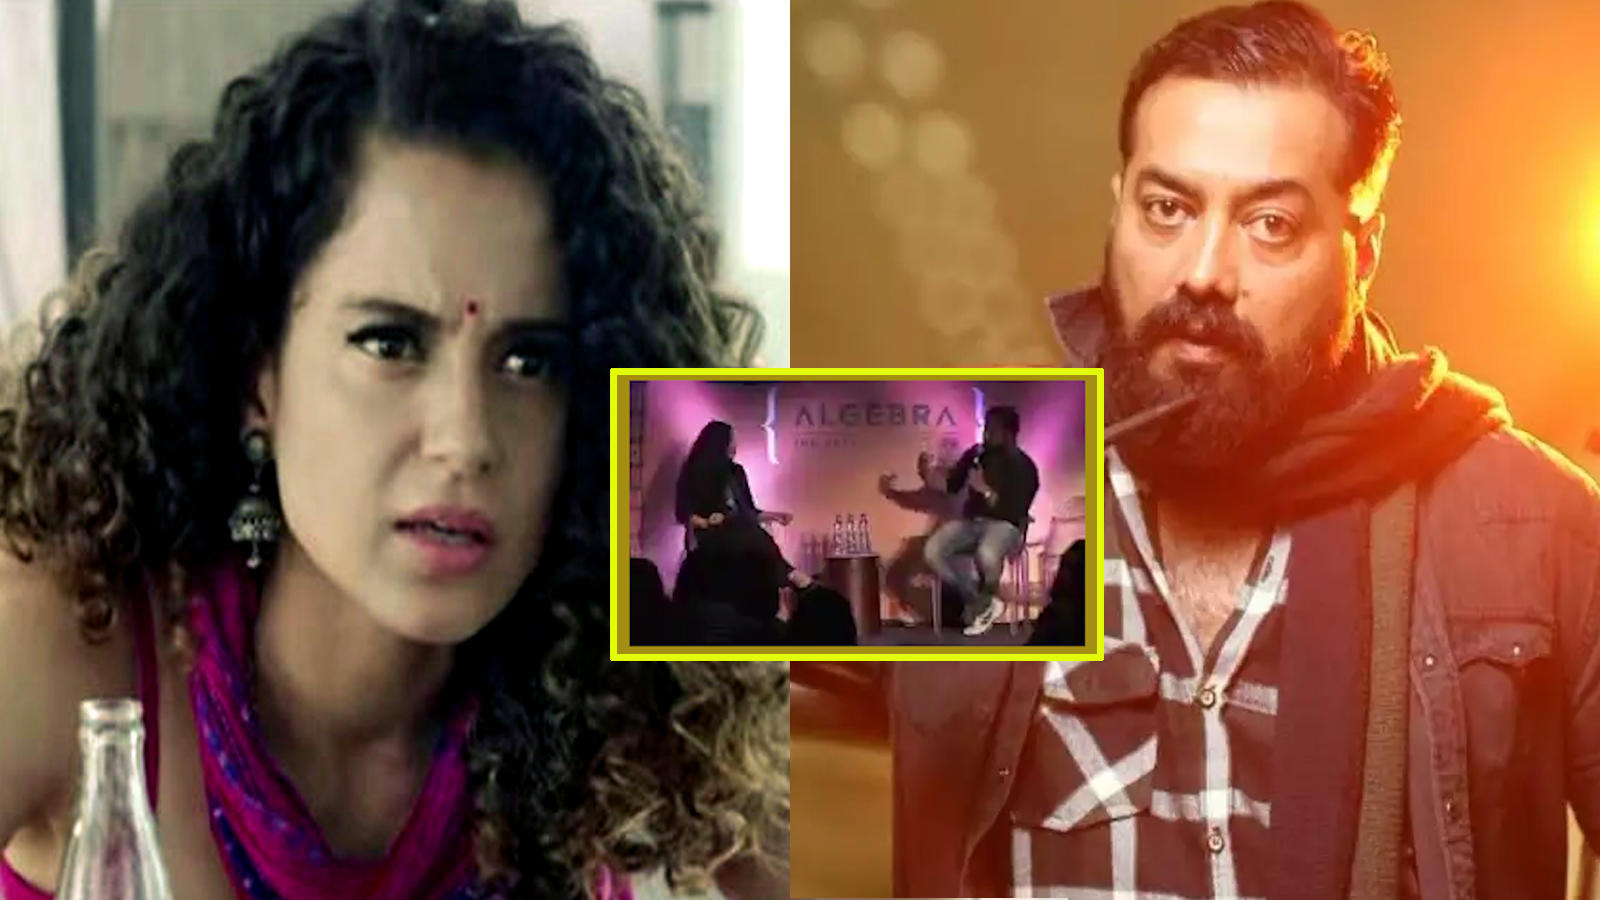 kangana-ranaut-shares-old-video-of-anurag-kashyap-talking-about-abusing-a-kid-in-school-and-manipulating-him-with-hugs-amid-sexual-assault-allegations-by-payal-ghosh